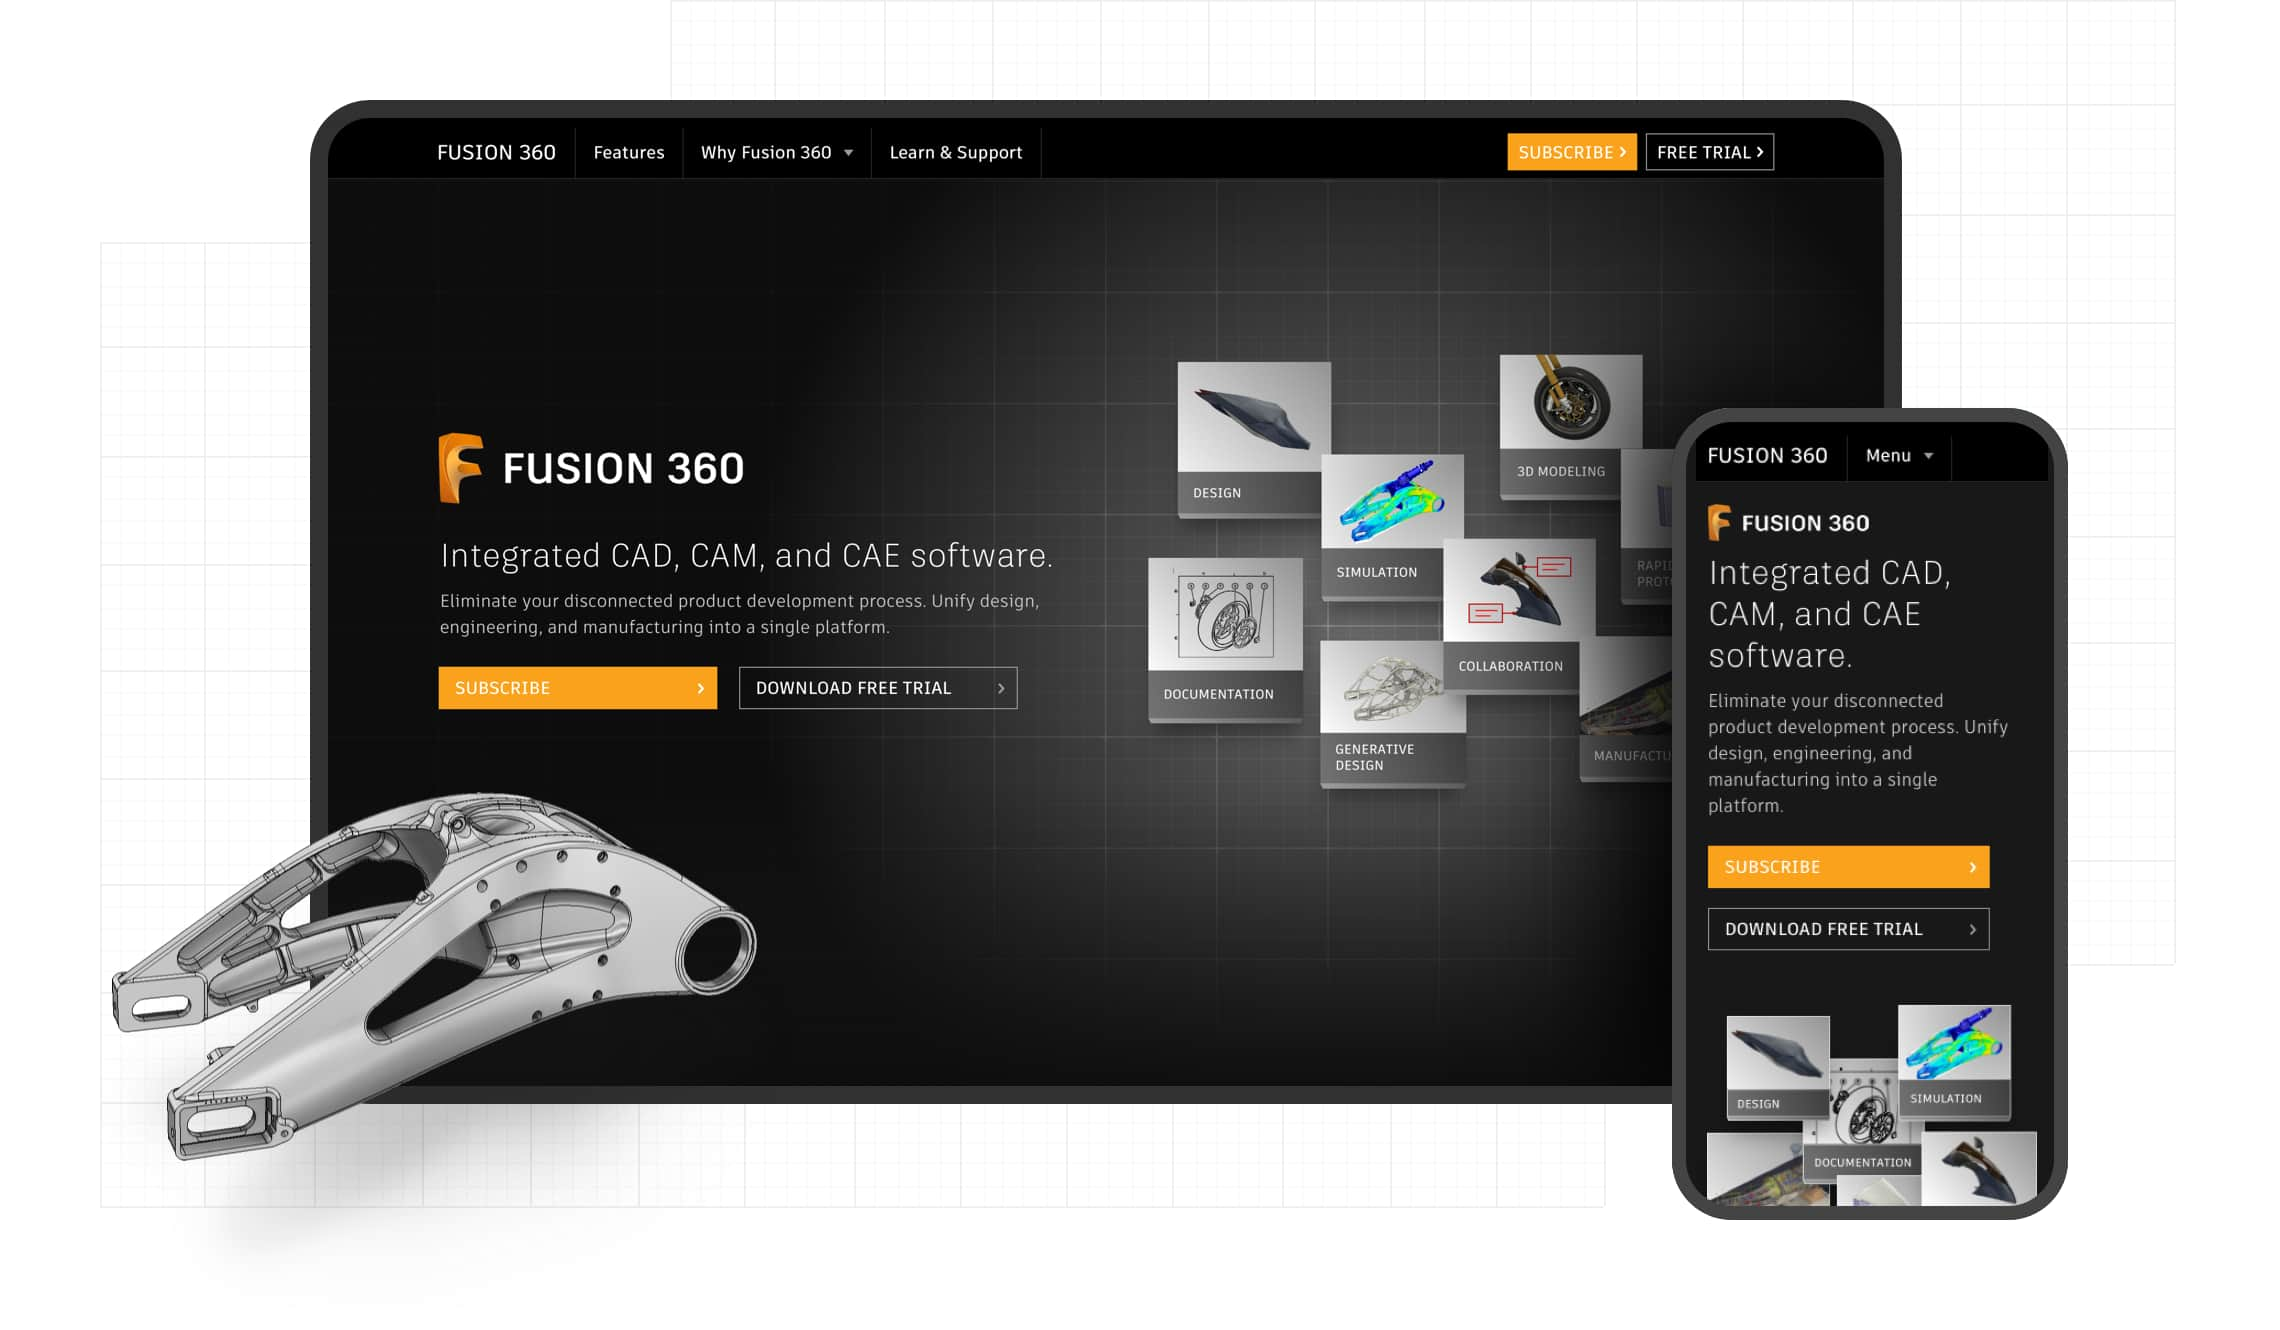 Composite image showing desktop and mobile views of the Fusion360 home page